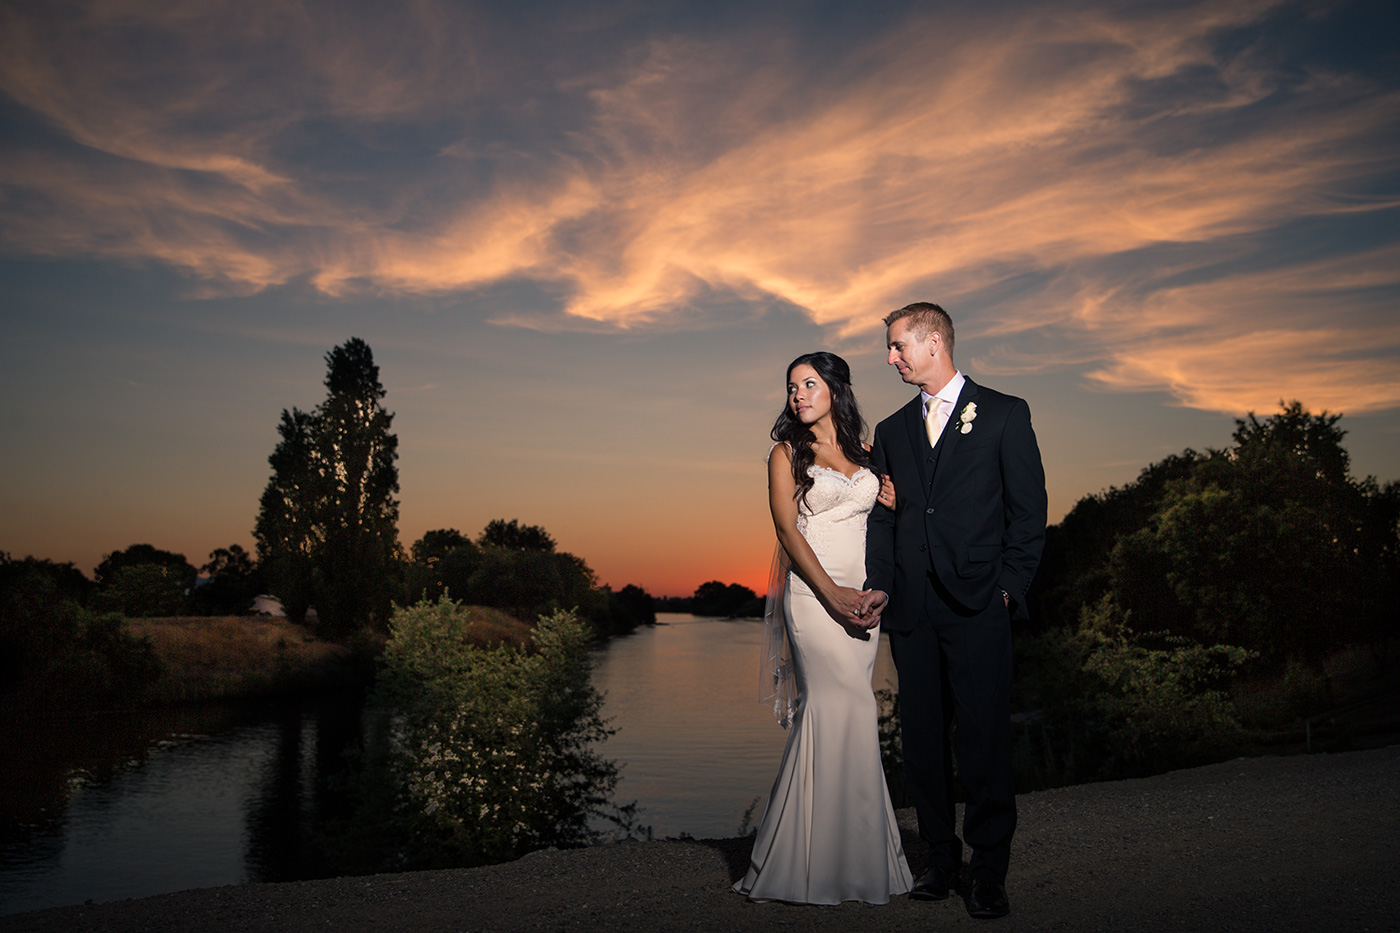 Wedding at The Rivermill